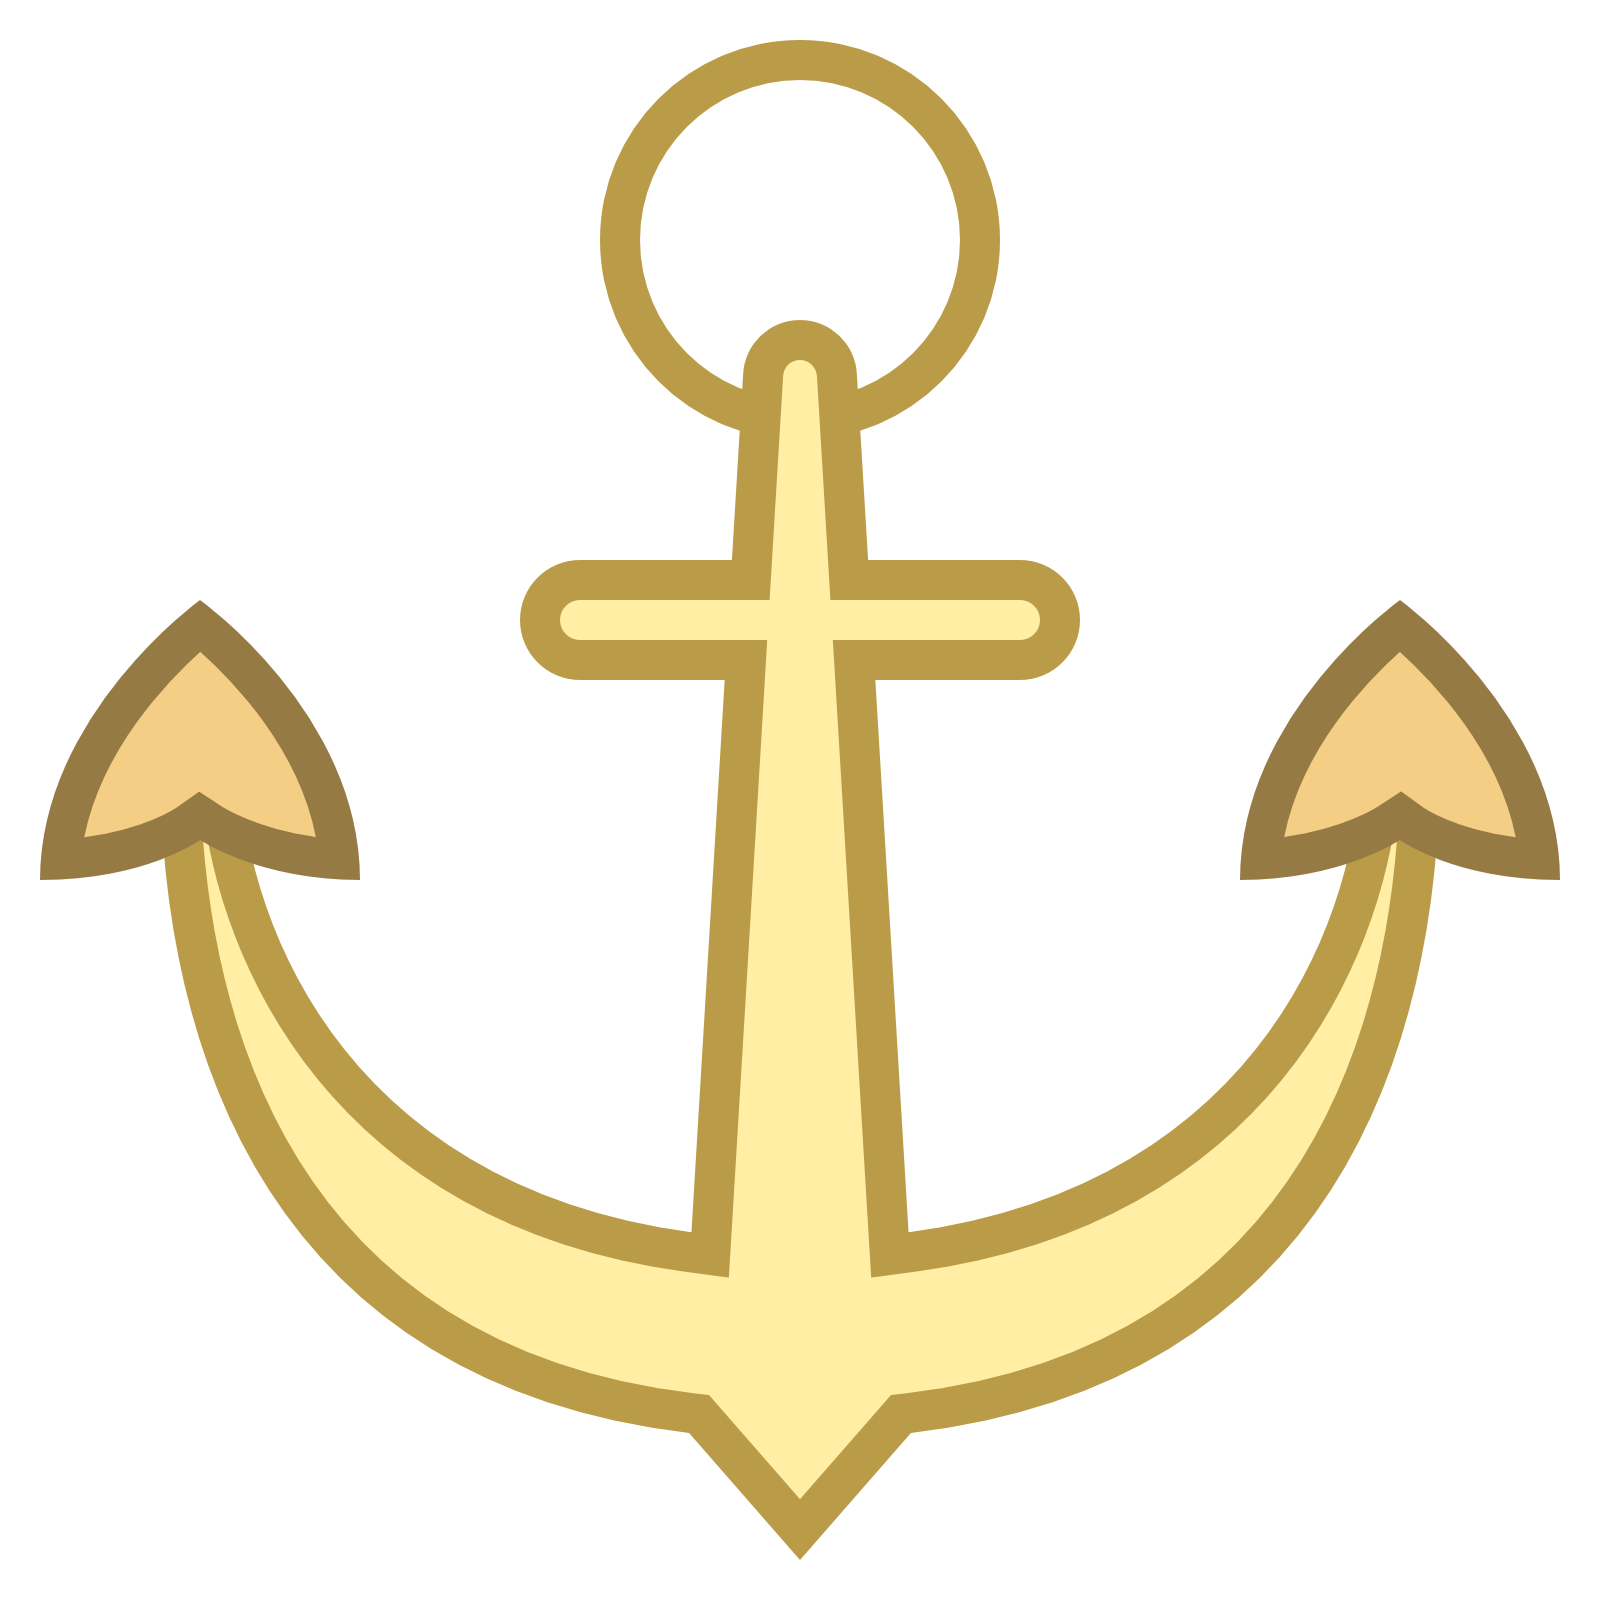 Clipart anchor traceable. Picture of an image